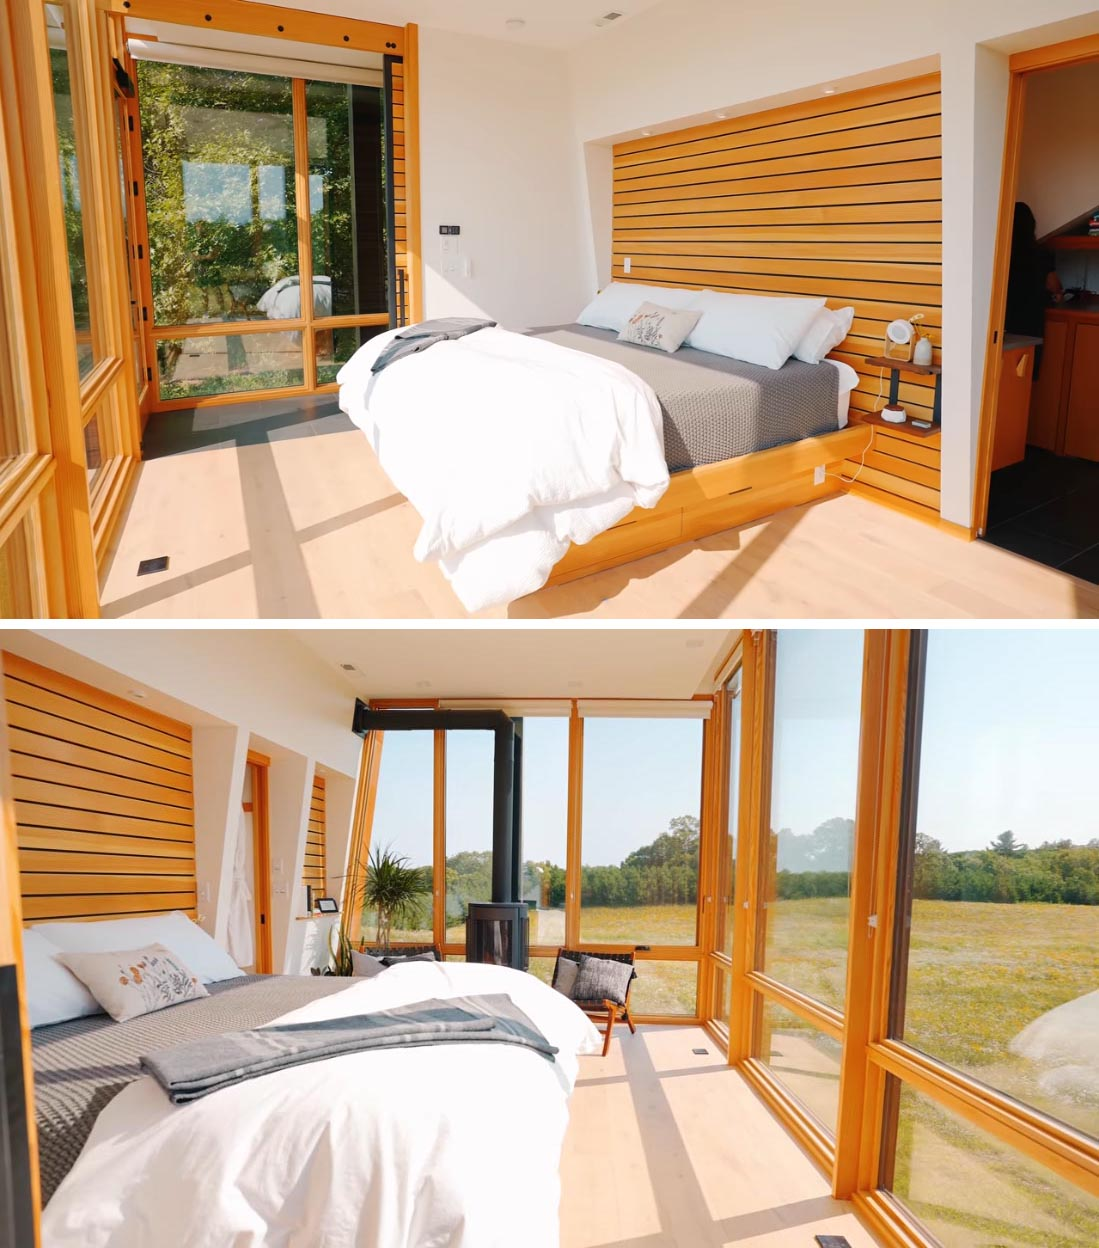 A modern cabin with a bedroom that includes floor-to-ceiling windows and wood accents.